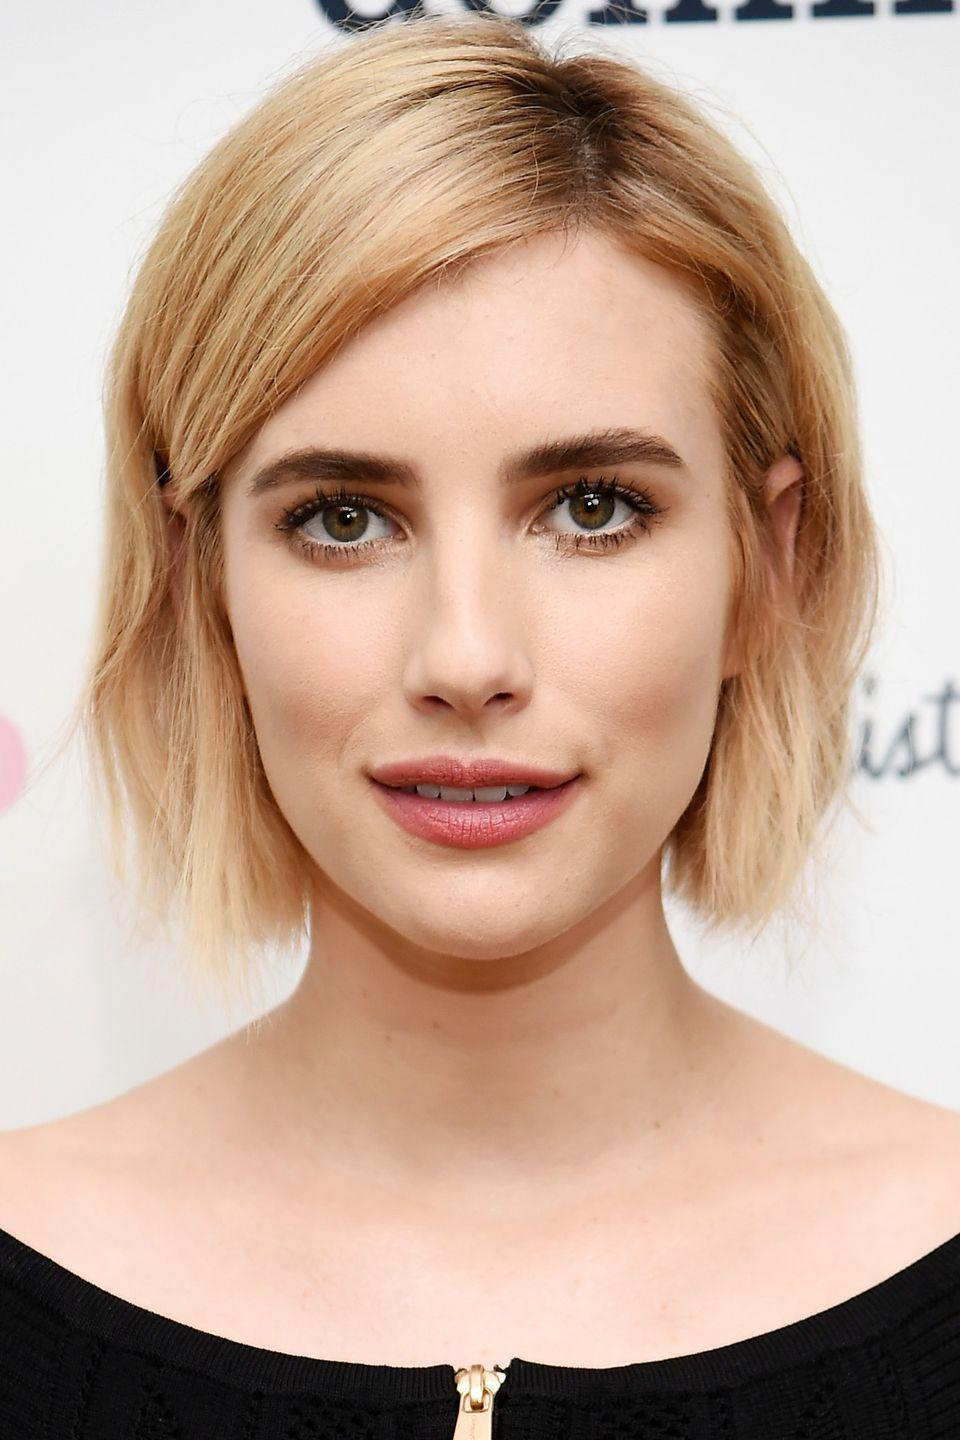 """<p>Emma Roberts has seen a lot of colors atop her head, due in part to the many roles she's played on <em><a href=""""https://www.amazon.com/Coven-Bitchcraft/dp/B00FRASL54/ref=sr_1_6?tag=syn-yahoo-20&ascsubtag=%5Bartid%7C10050.g.4942%5Bsrc%7Cyahoo-us"""" rel=""""nofollow noopener"""" target=""""_blank"""" data-ylk=""""slk:American Horror Story"""" class=""""link rapid-noclick-resp"""">American Horror Story</a></em>.</p>"""